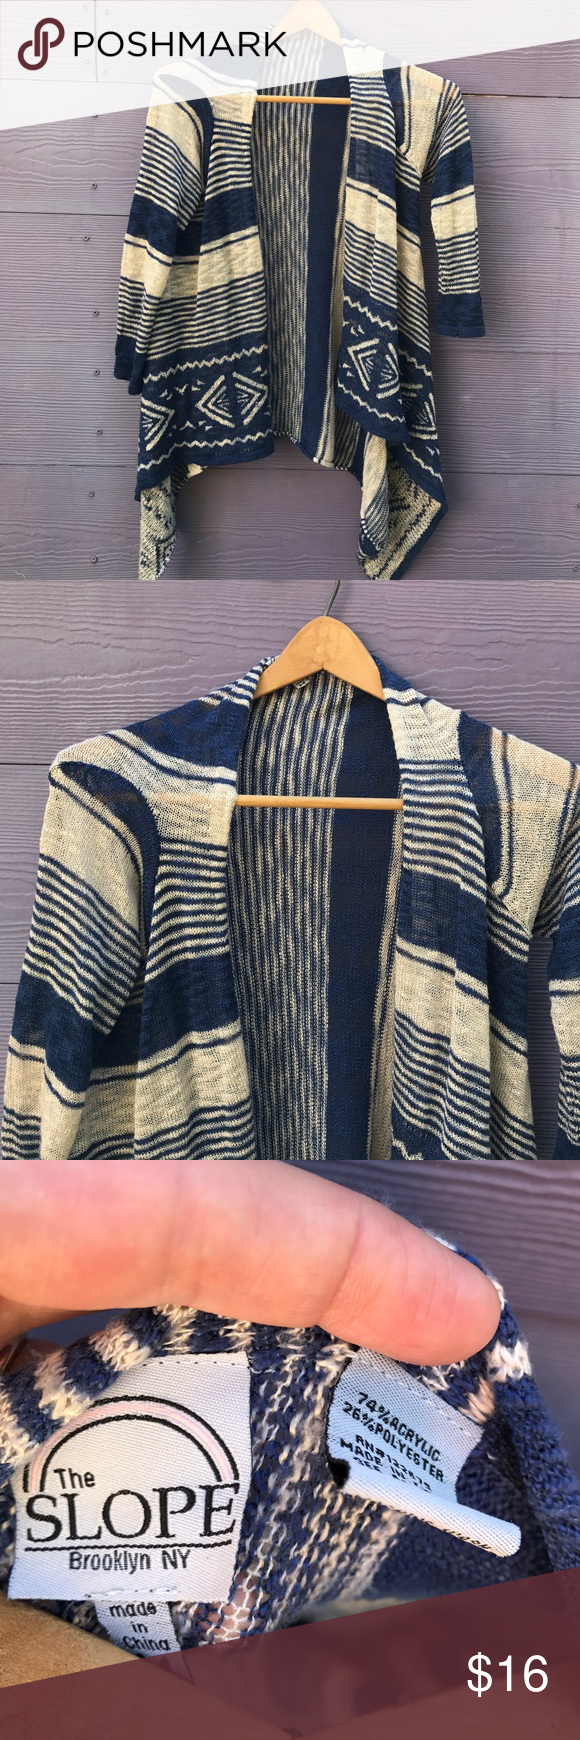 """Slope Waterfall Sweater A nice lightweight waterfall sweater, size M, has been worn and is in nice shape. Shoulder to hem: 24"""", shoulder to lowest point: 35"""", pit to pit: 18"""". Acrylic/poly. Slope Sweaters Cardigans"""